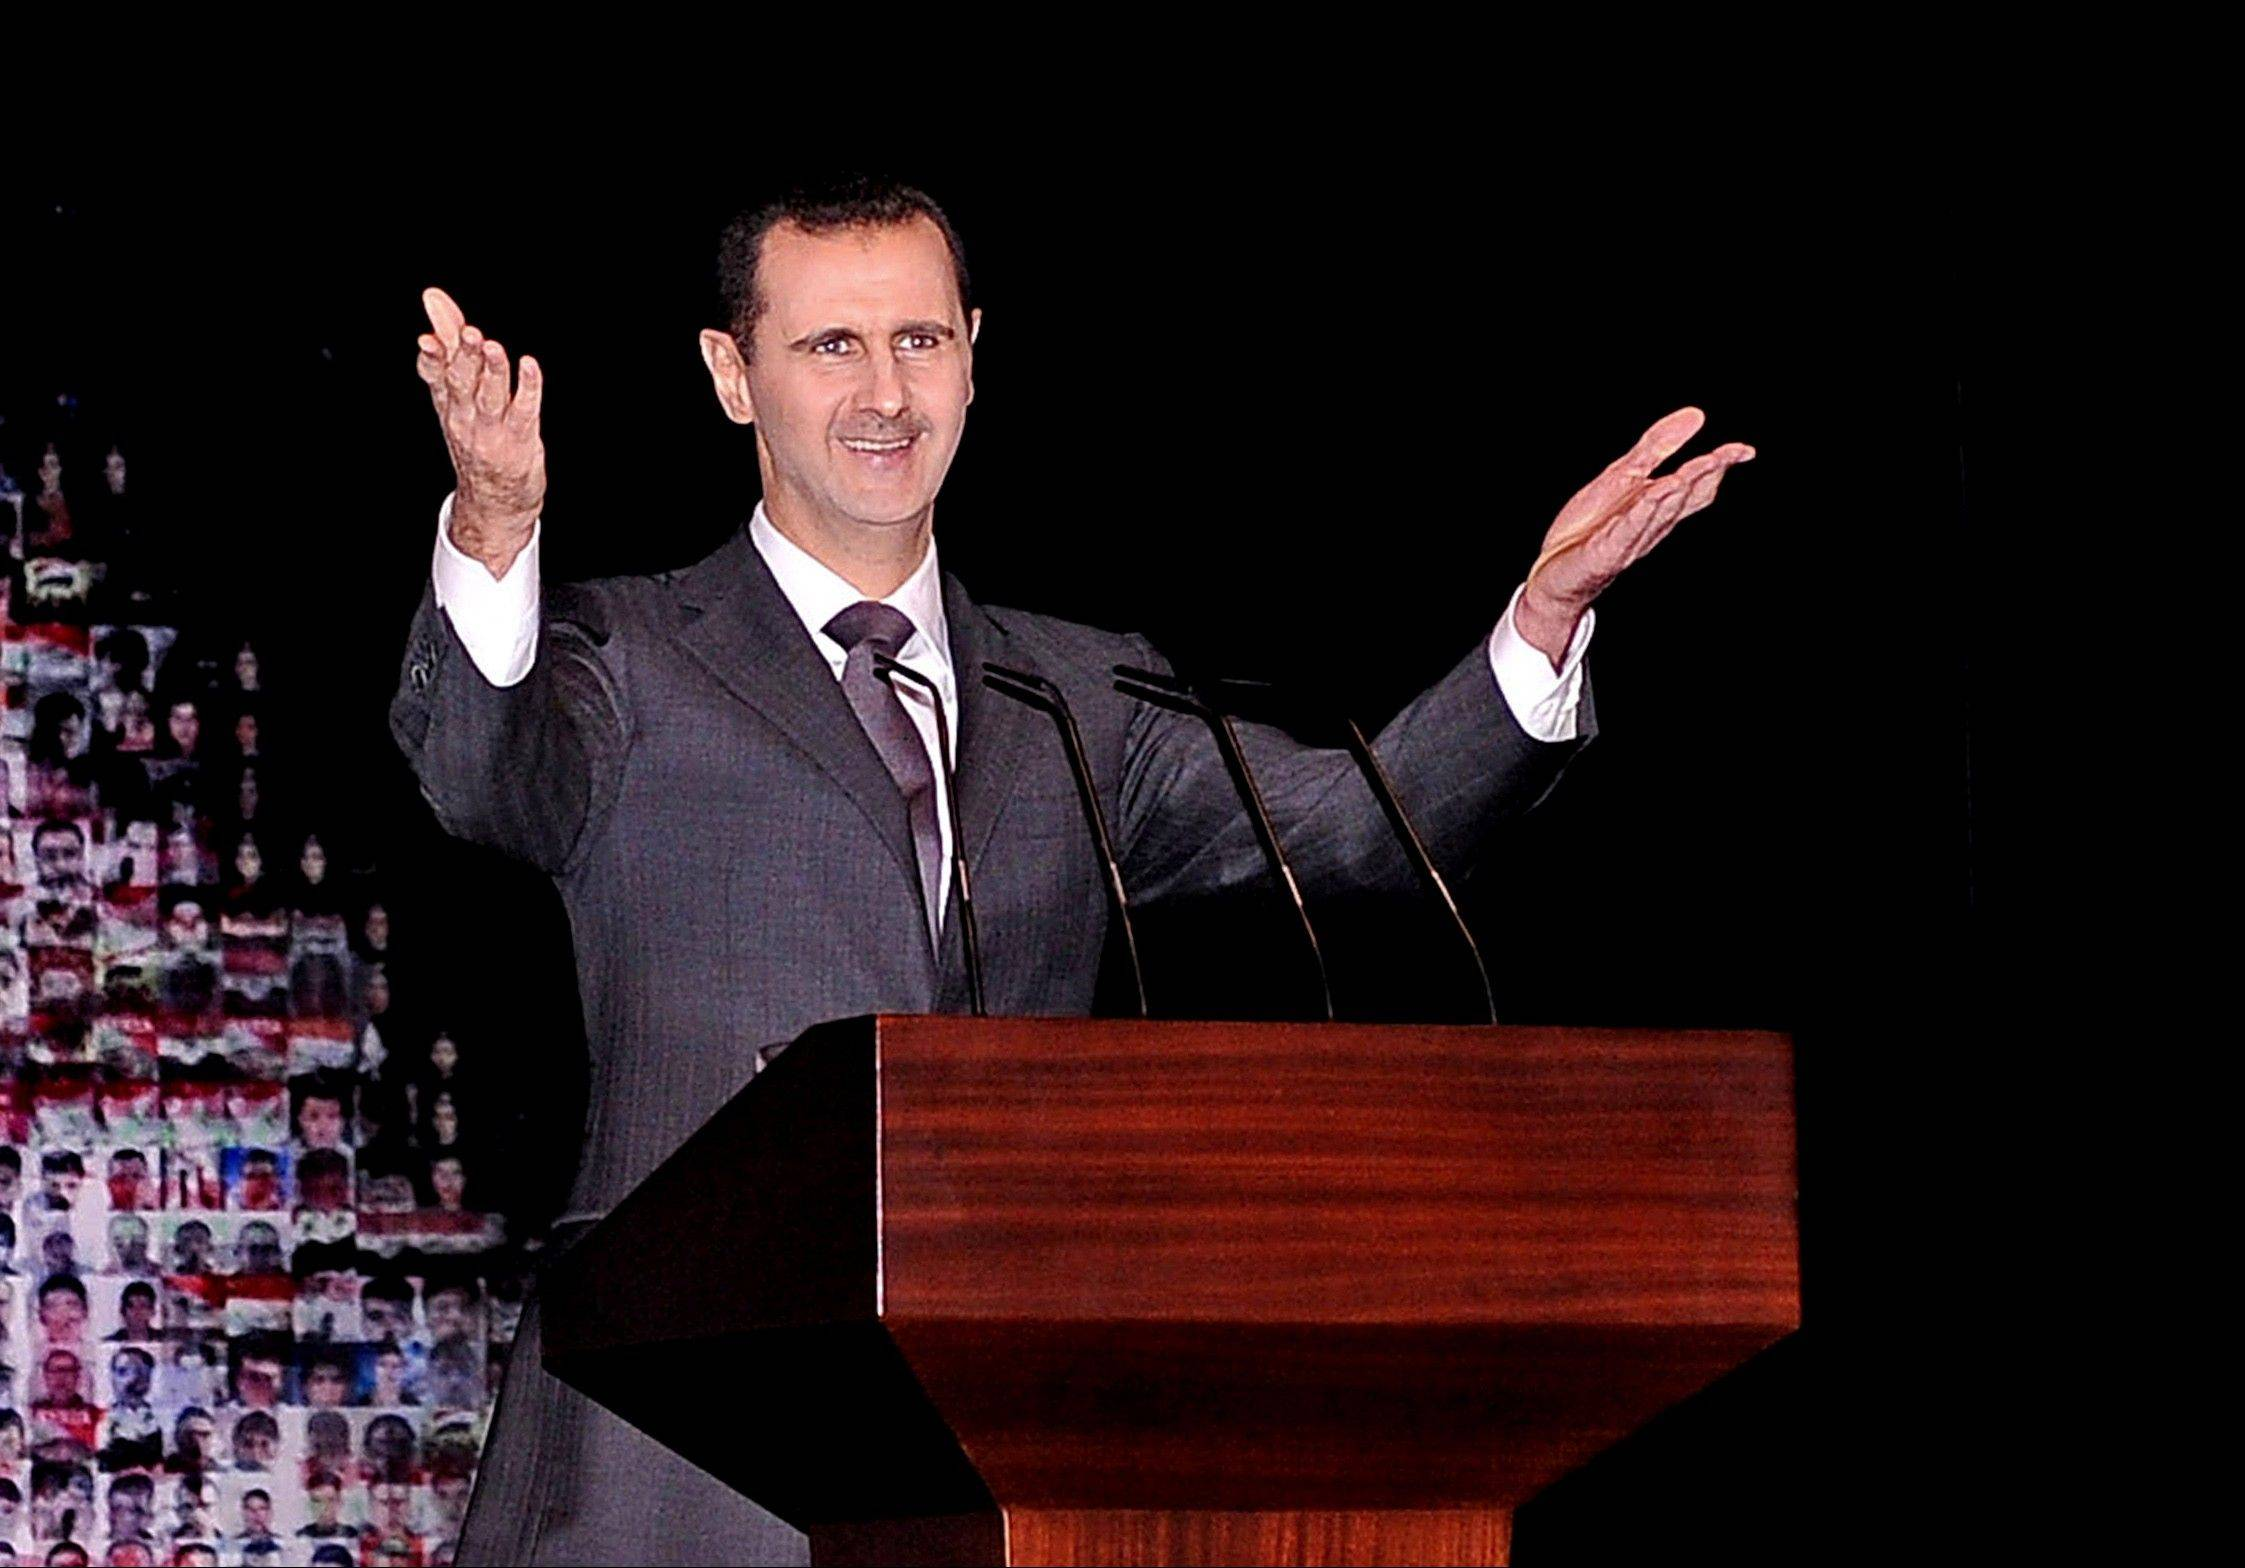 Syrian President Bashar Assad speaks at the Opera House in Damascus on Sunday. He outlined a new peace initiative that includes a national reconciliation conference and a new government and constitution but demanded regional and Western countries stop funding and arming rebels first.